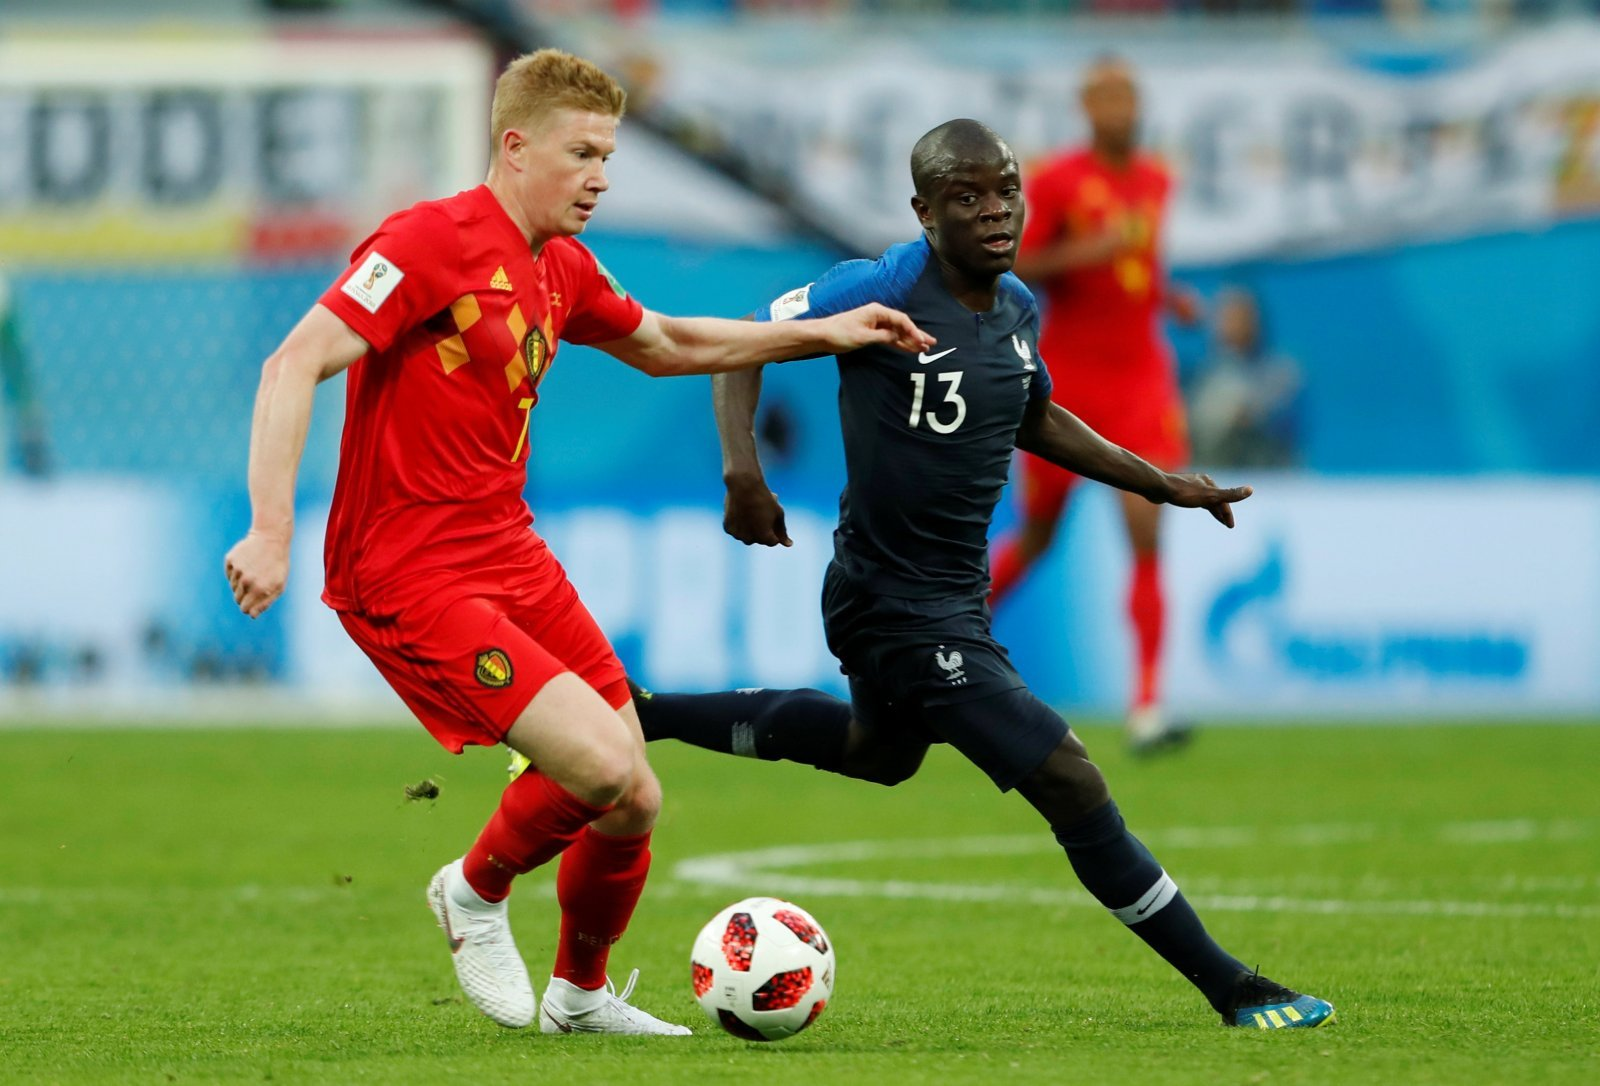 N'Golo Kante can become Pep Guardiola's next midfield icon